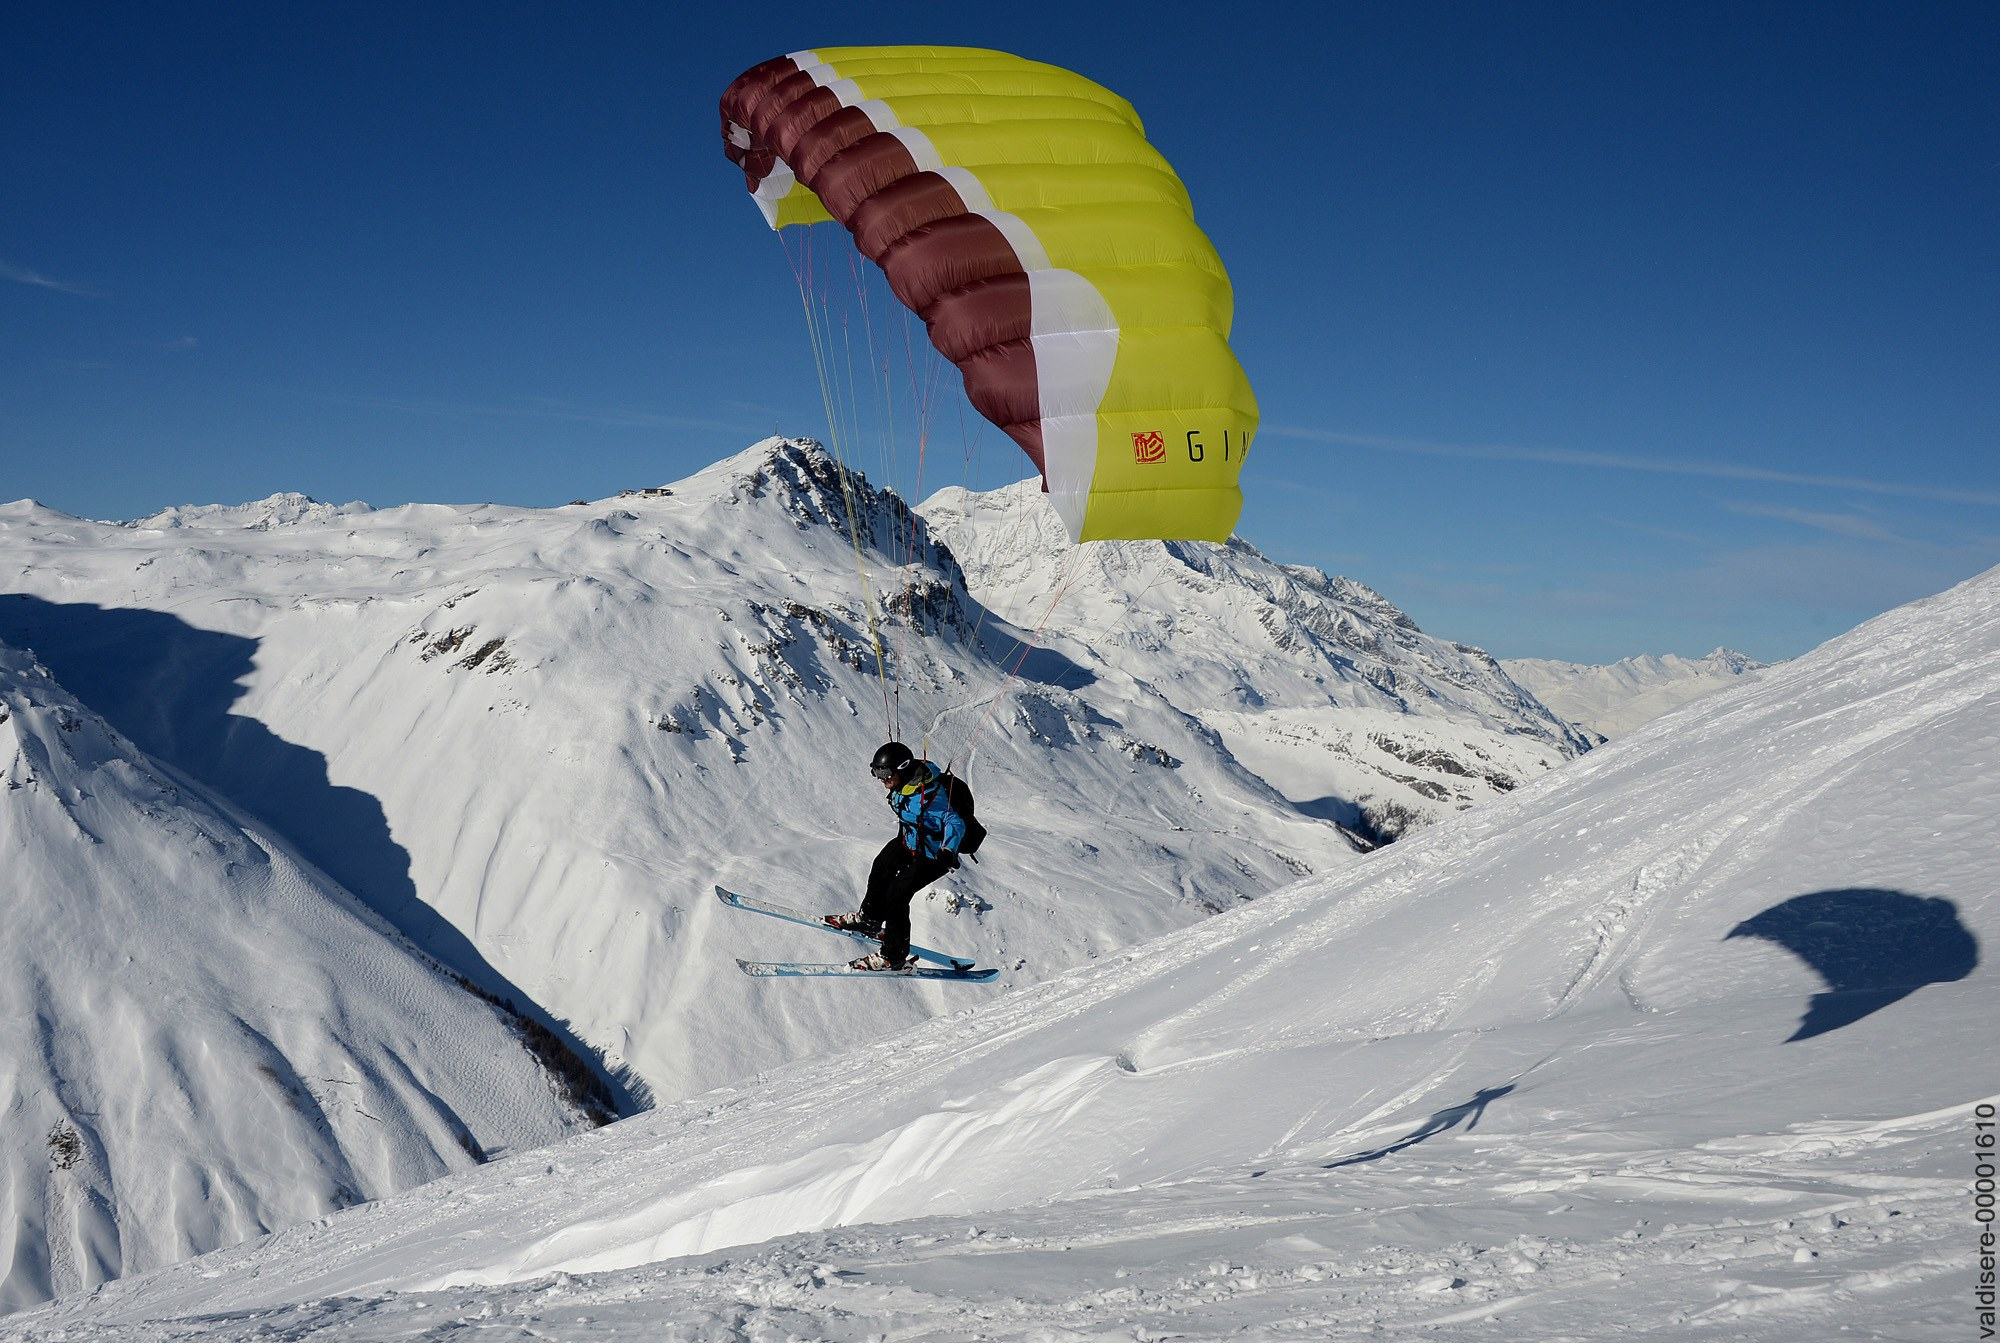 Parapente - Speed Riding - Val d'isère